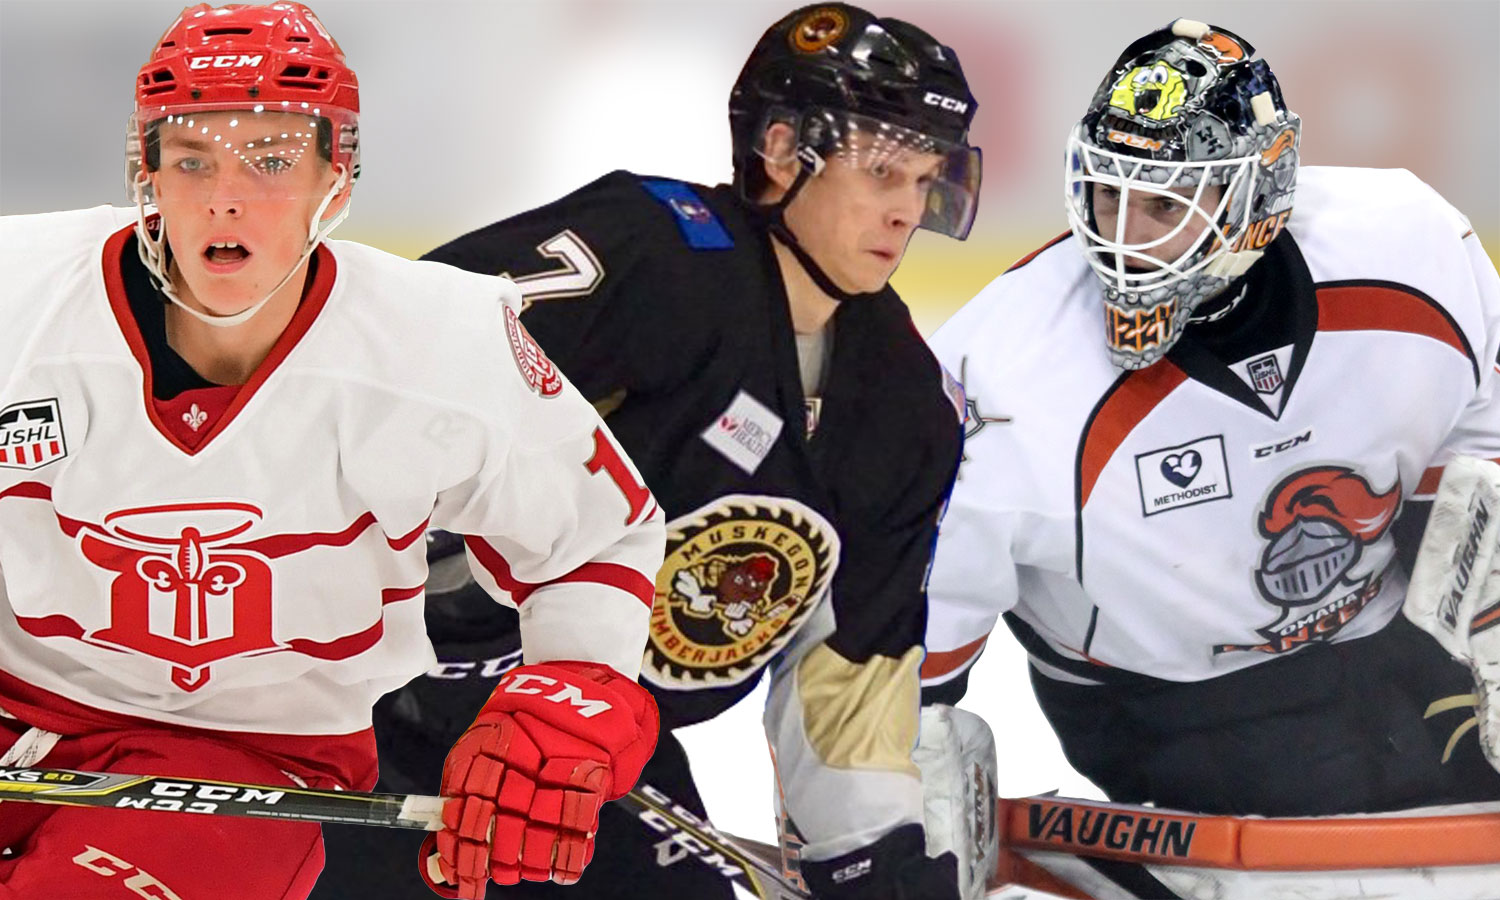 USHL: Players Of The Week - Week 27 Of The 2017-18 Season